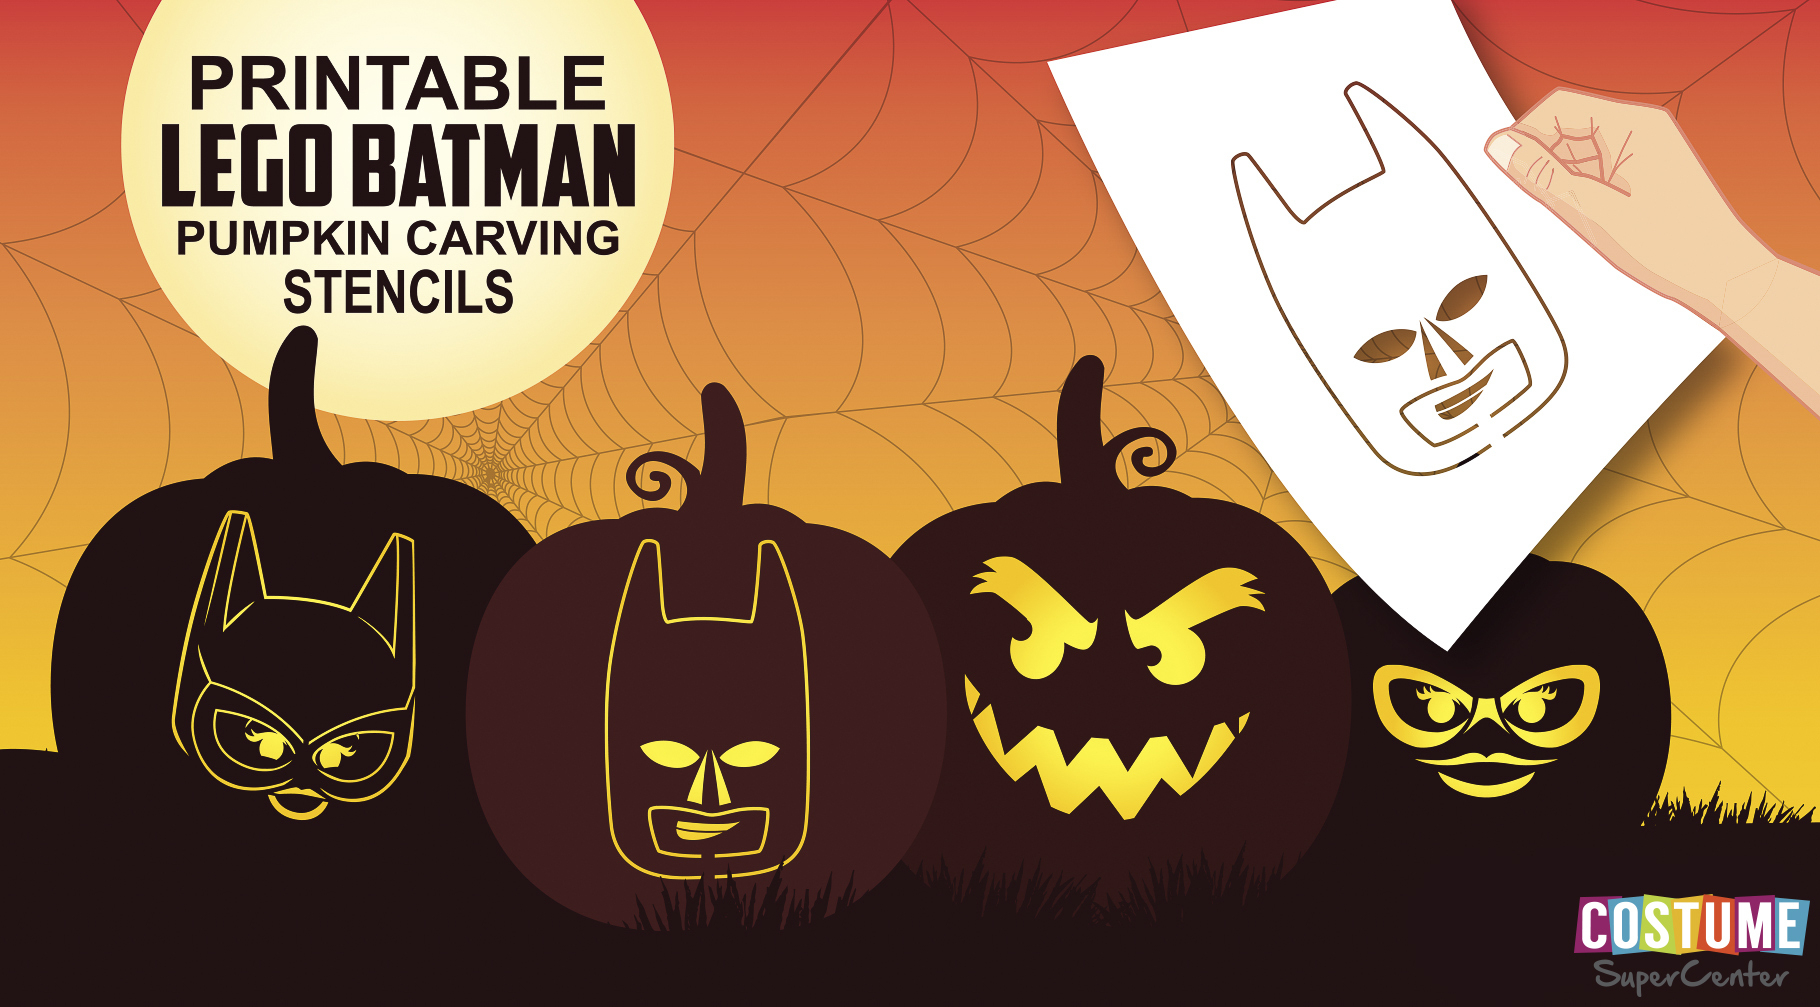 Free Lego Batman Pumpkin Carving Stencils | Costume Supercenter Blog - Superhero Pumpkin Stencils Free Printable